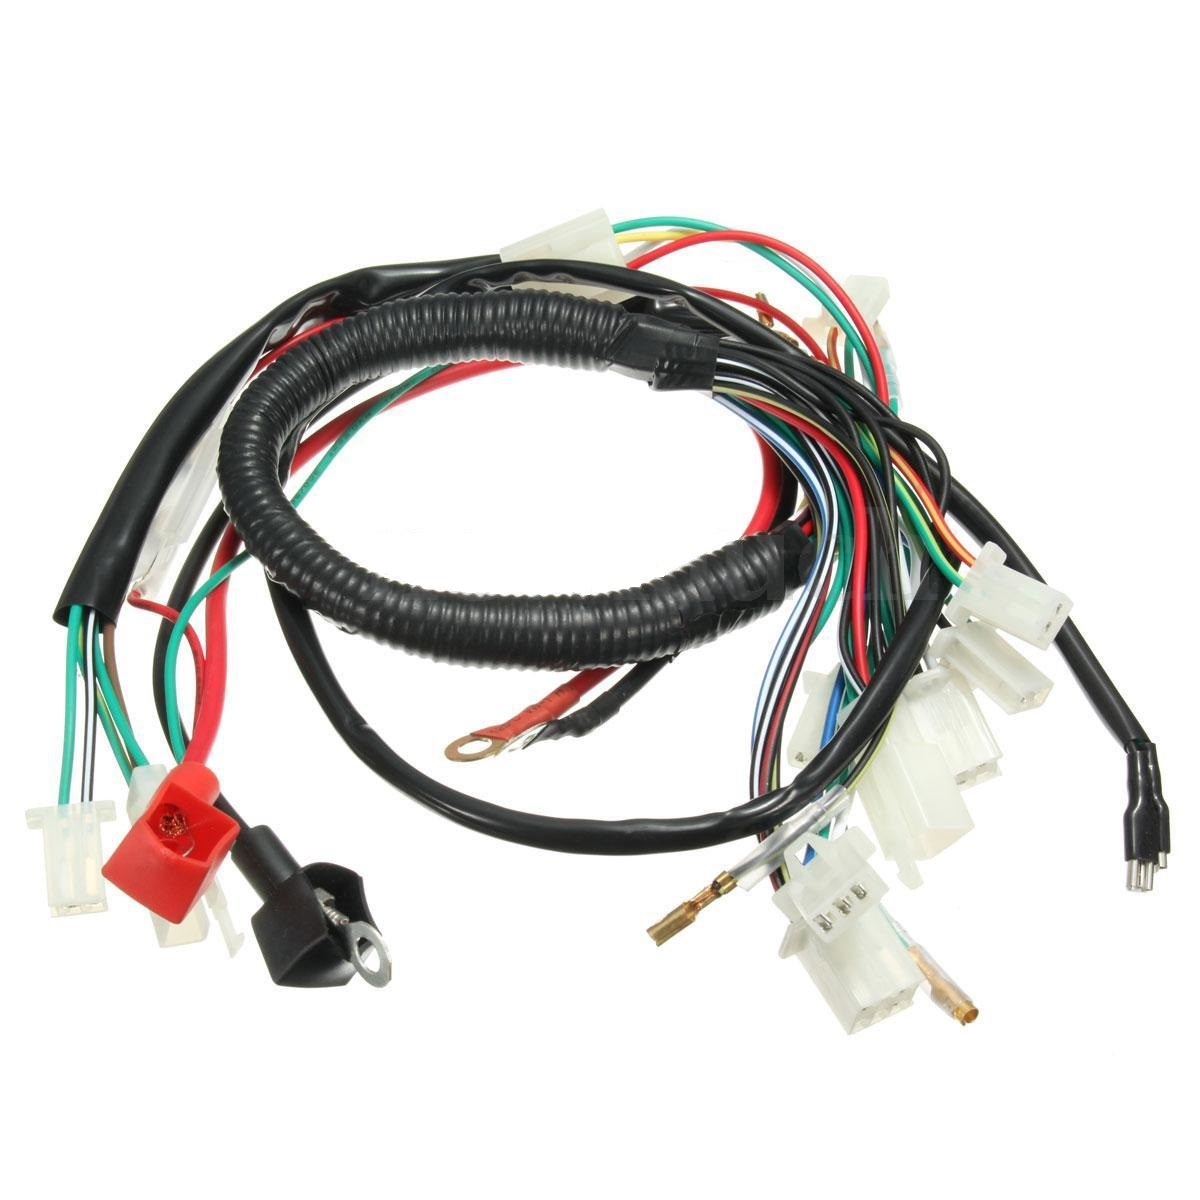 hight resolution of wiring harness 110cc atv automatic engine 52fm hawk sunl dune buggy